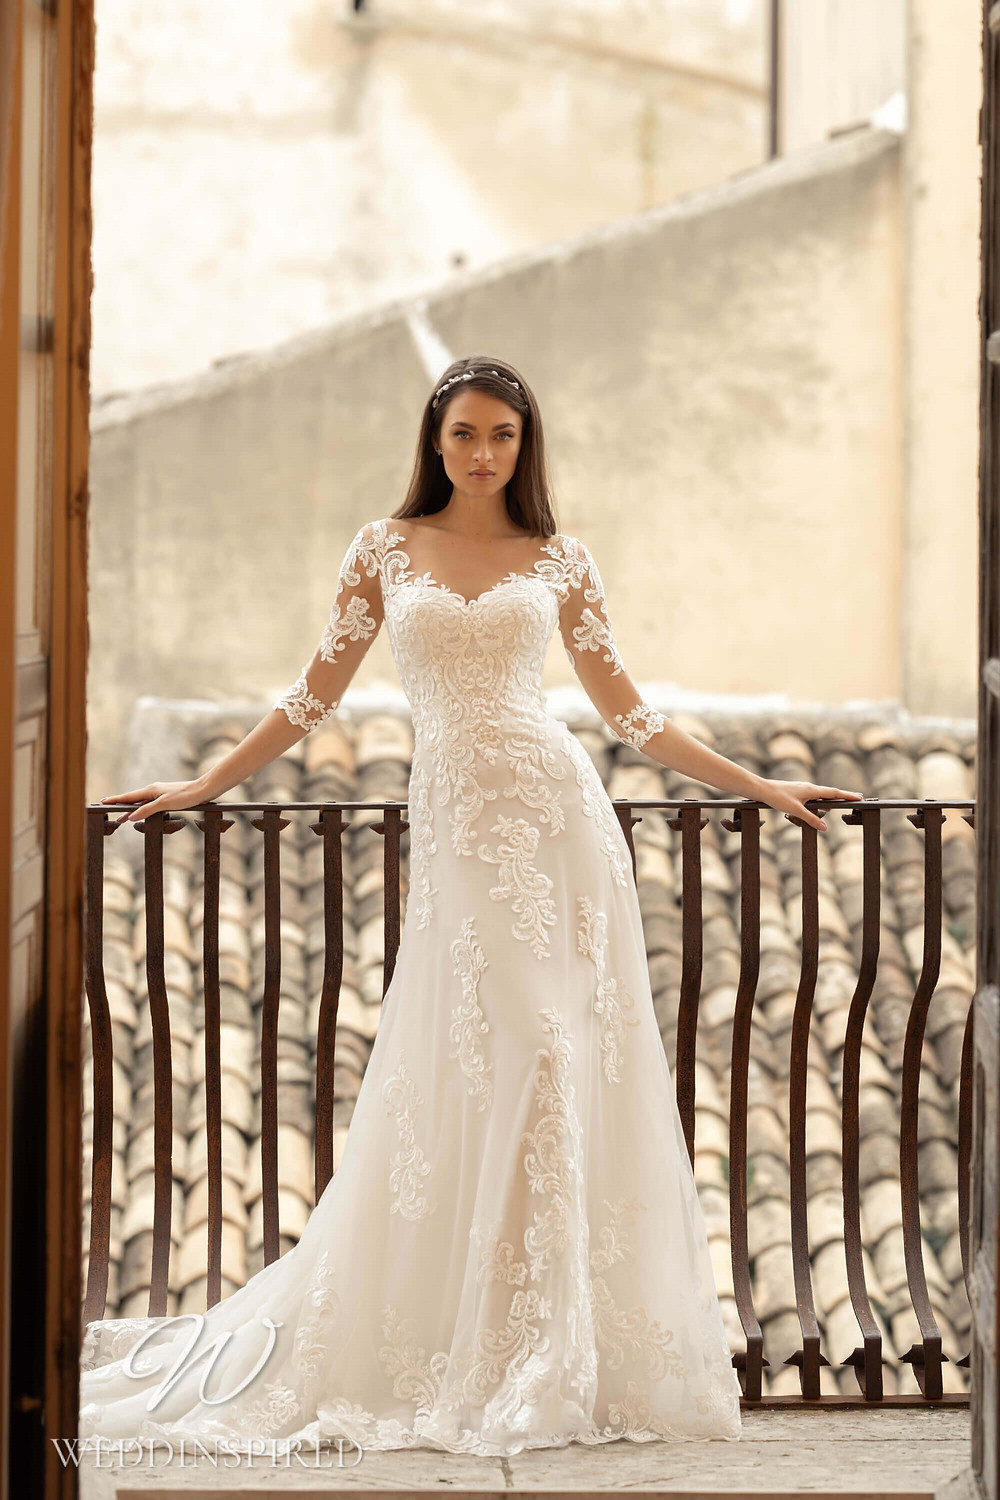 A Lussano 2021 lace A-line wedding dress with half sleeves